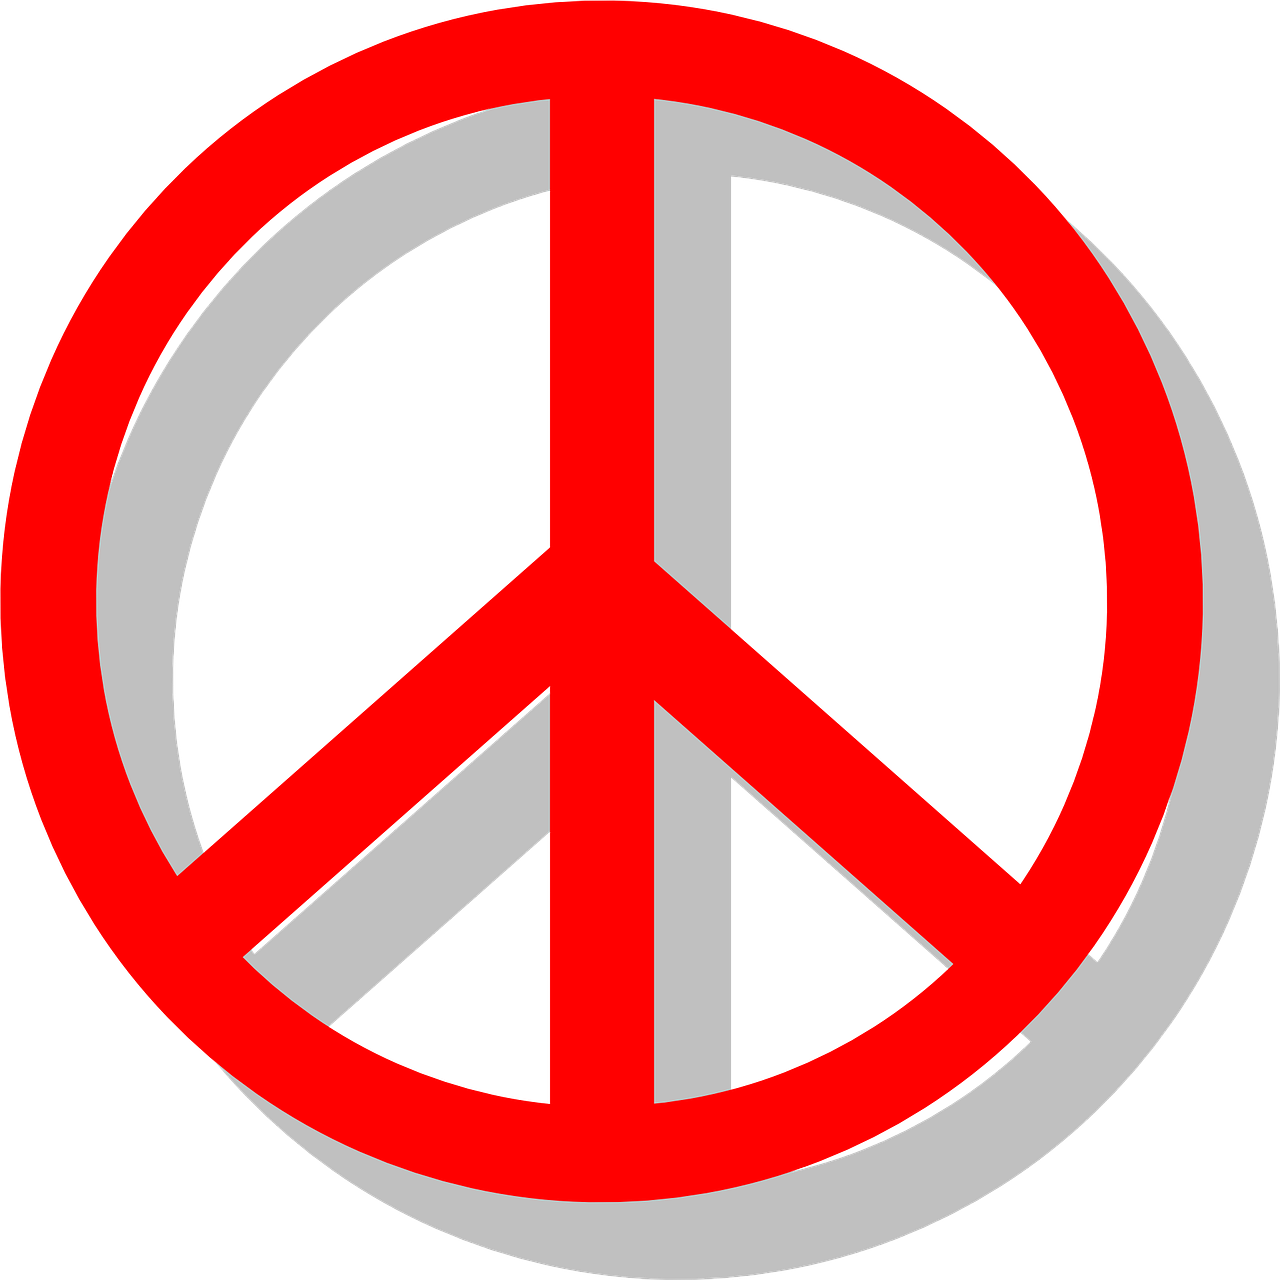 peace sign red free photo